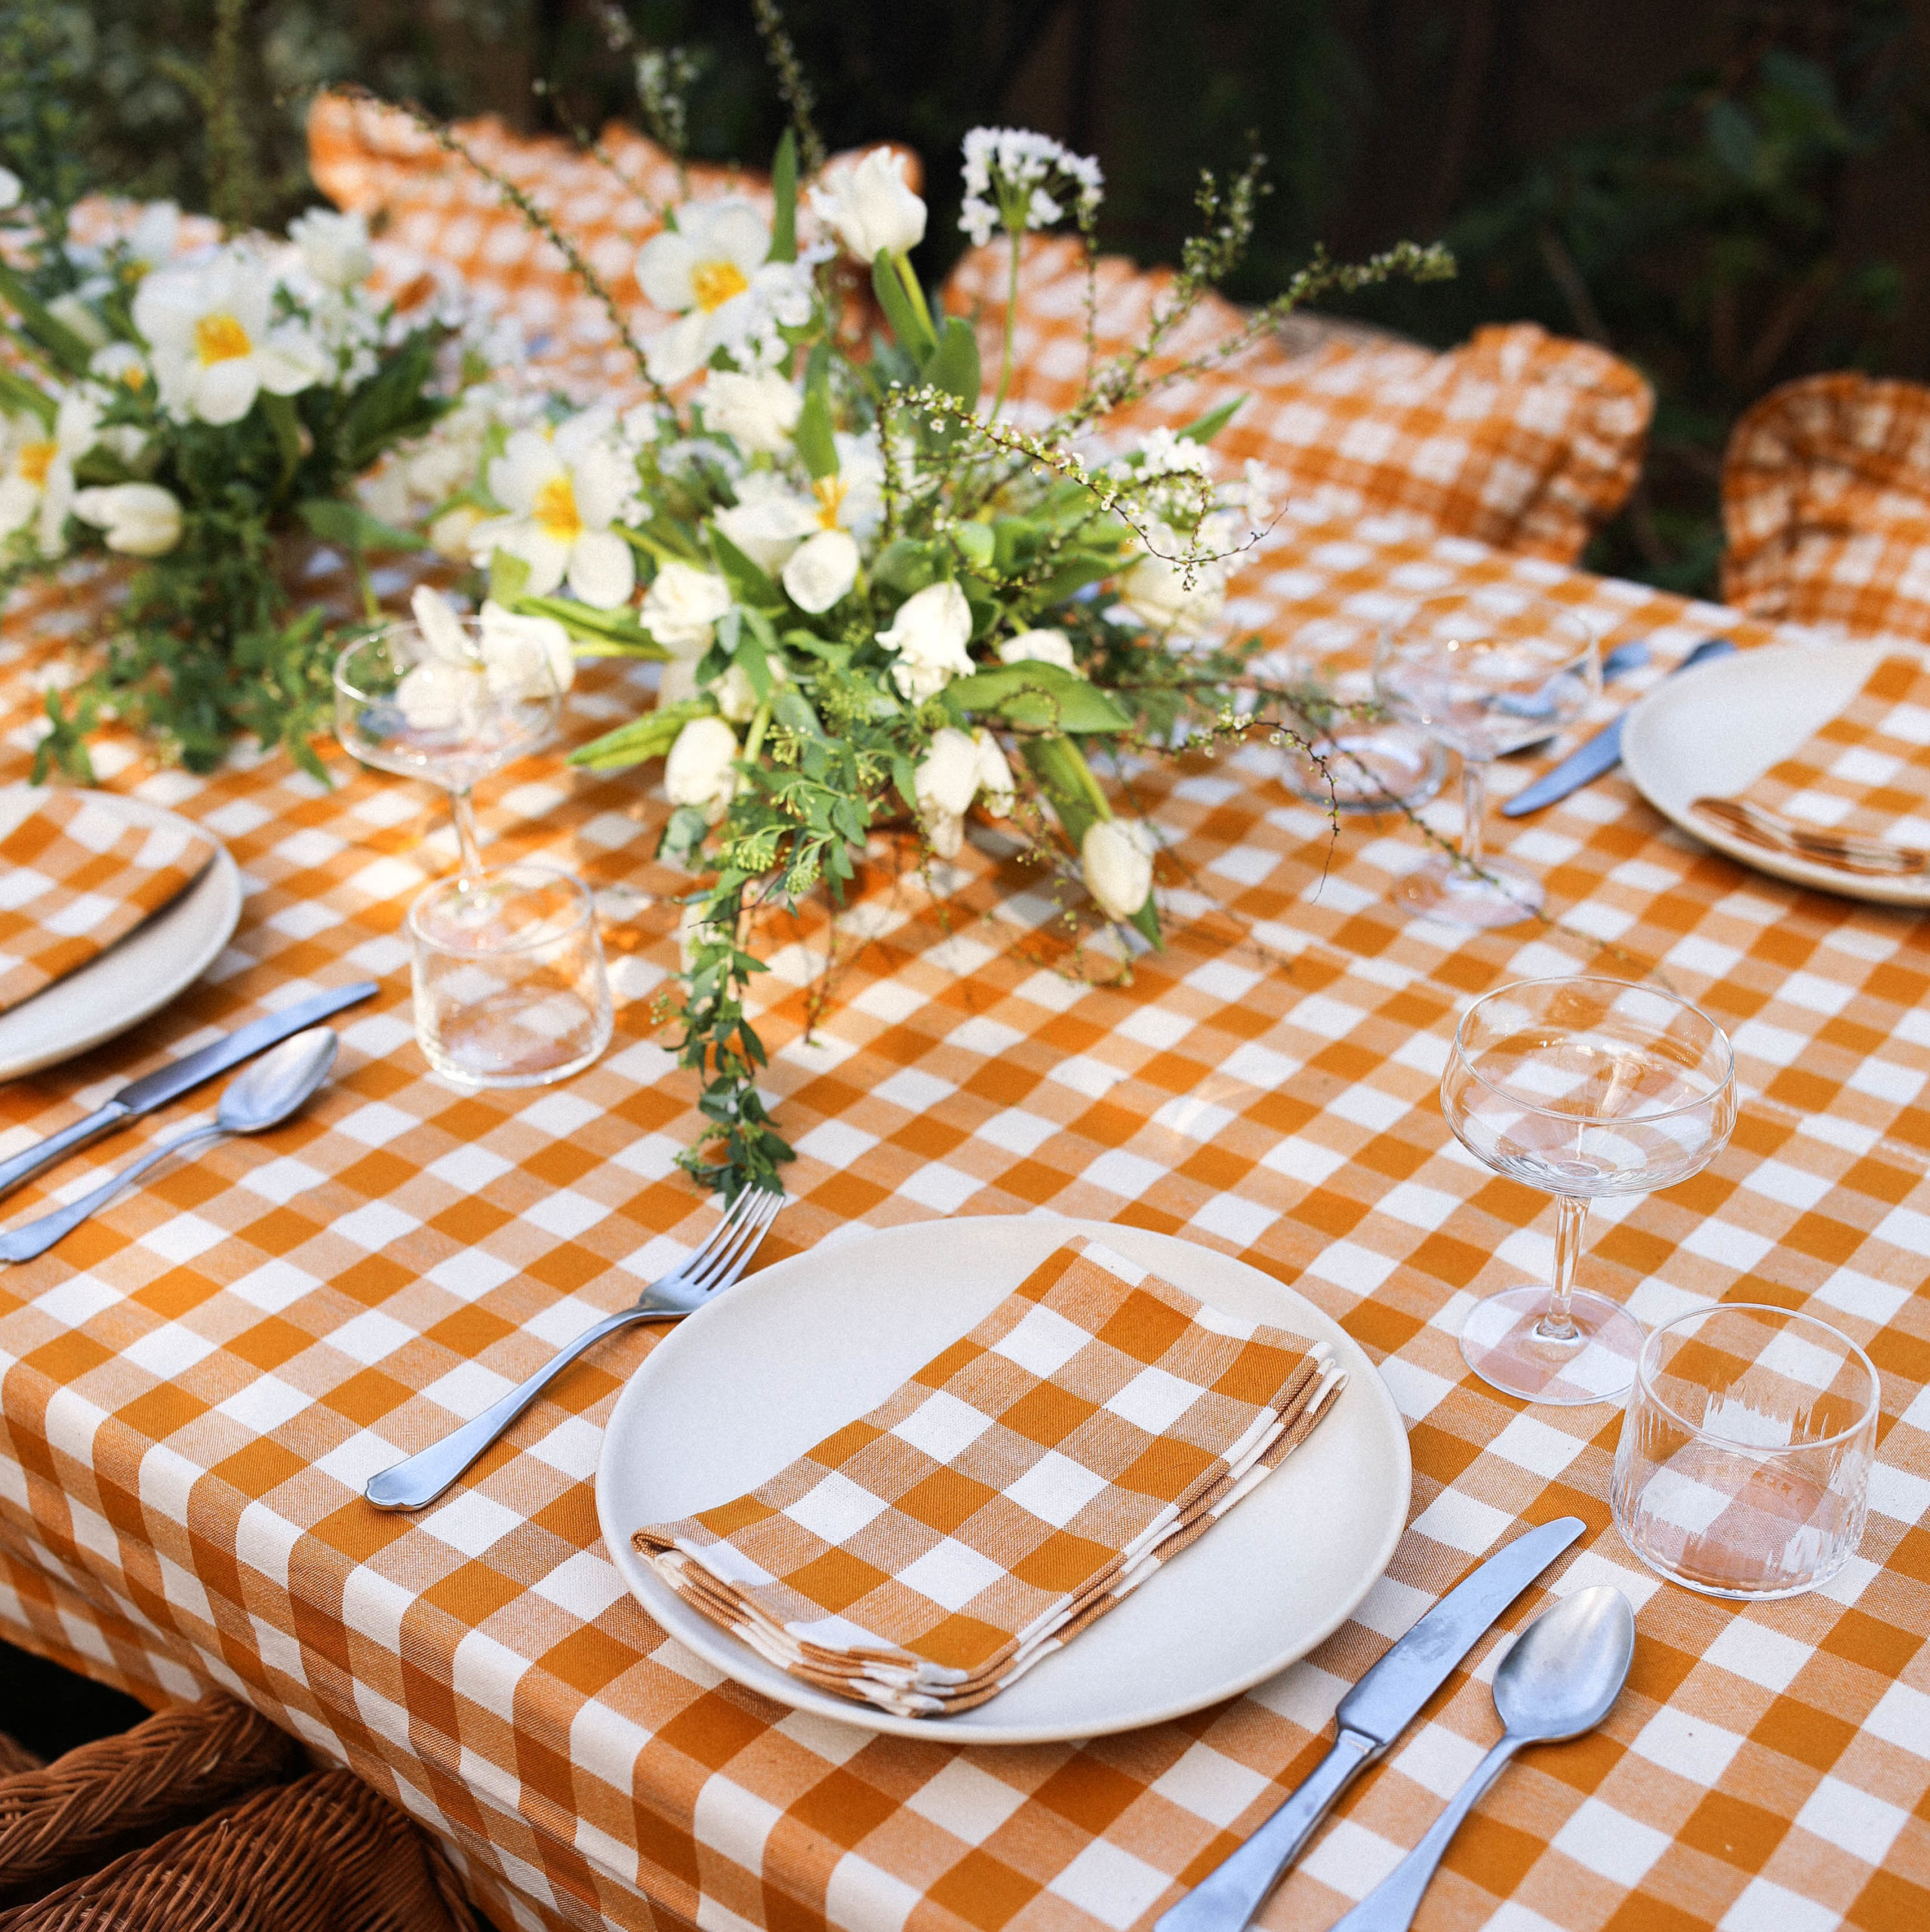 gingham goldenrod tablecloth and napkins